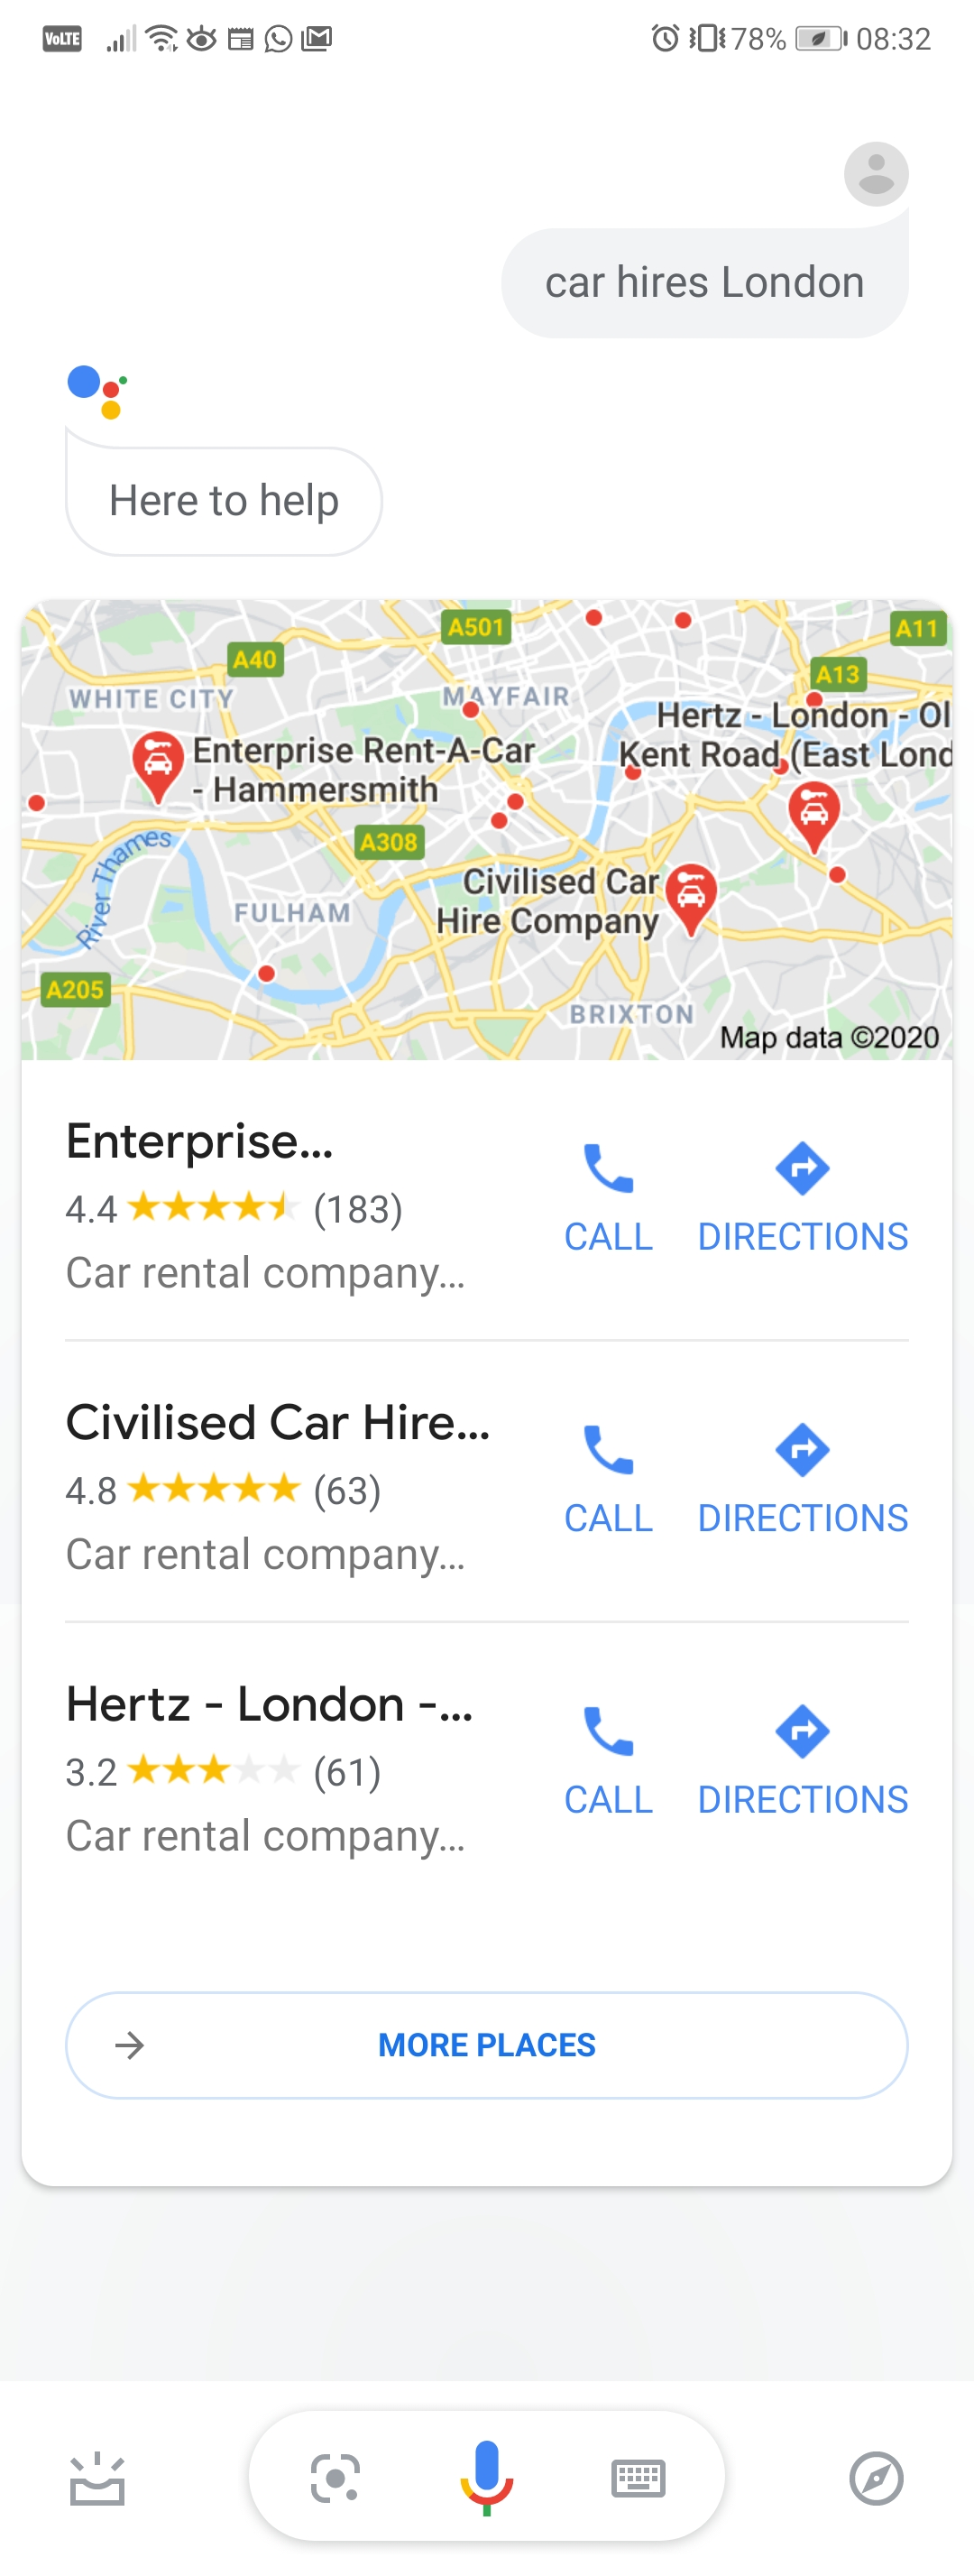 Google Assistant Voice Search for Car Hire in London